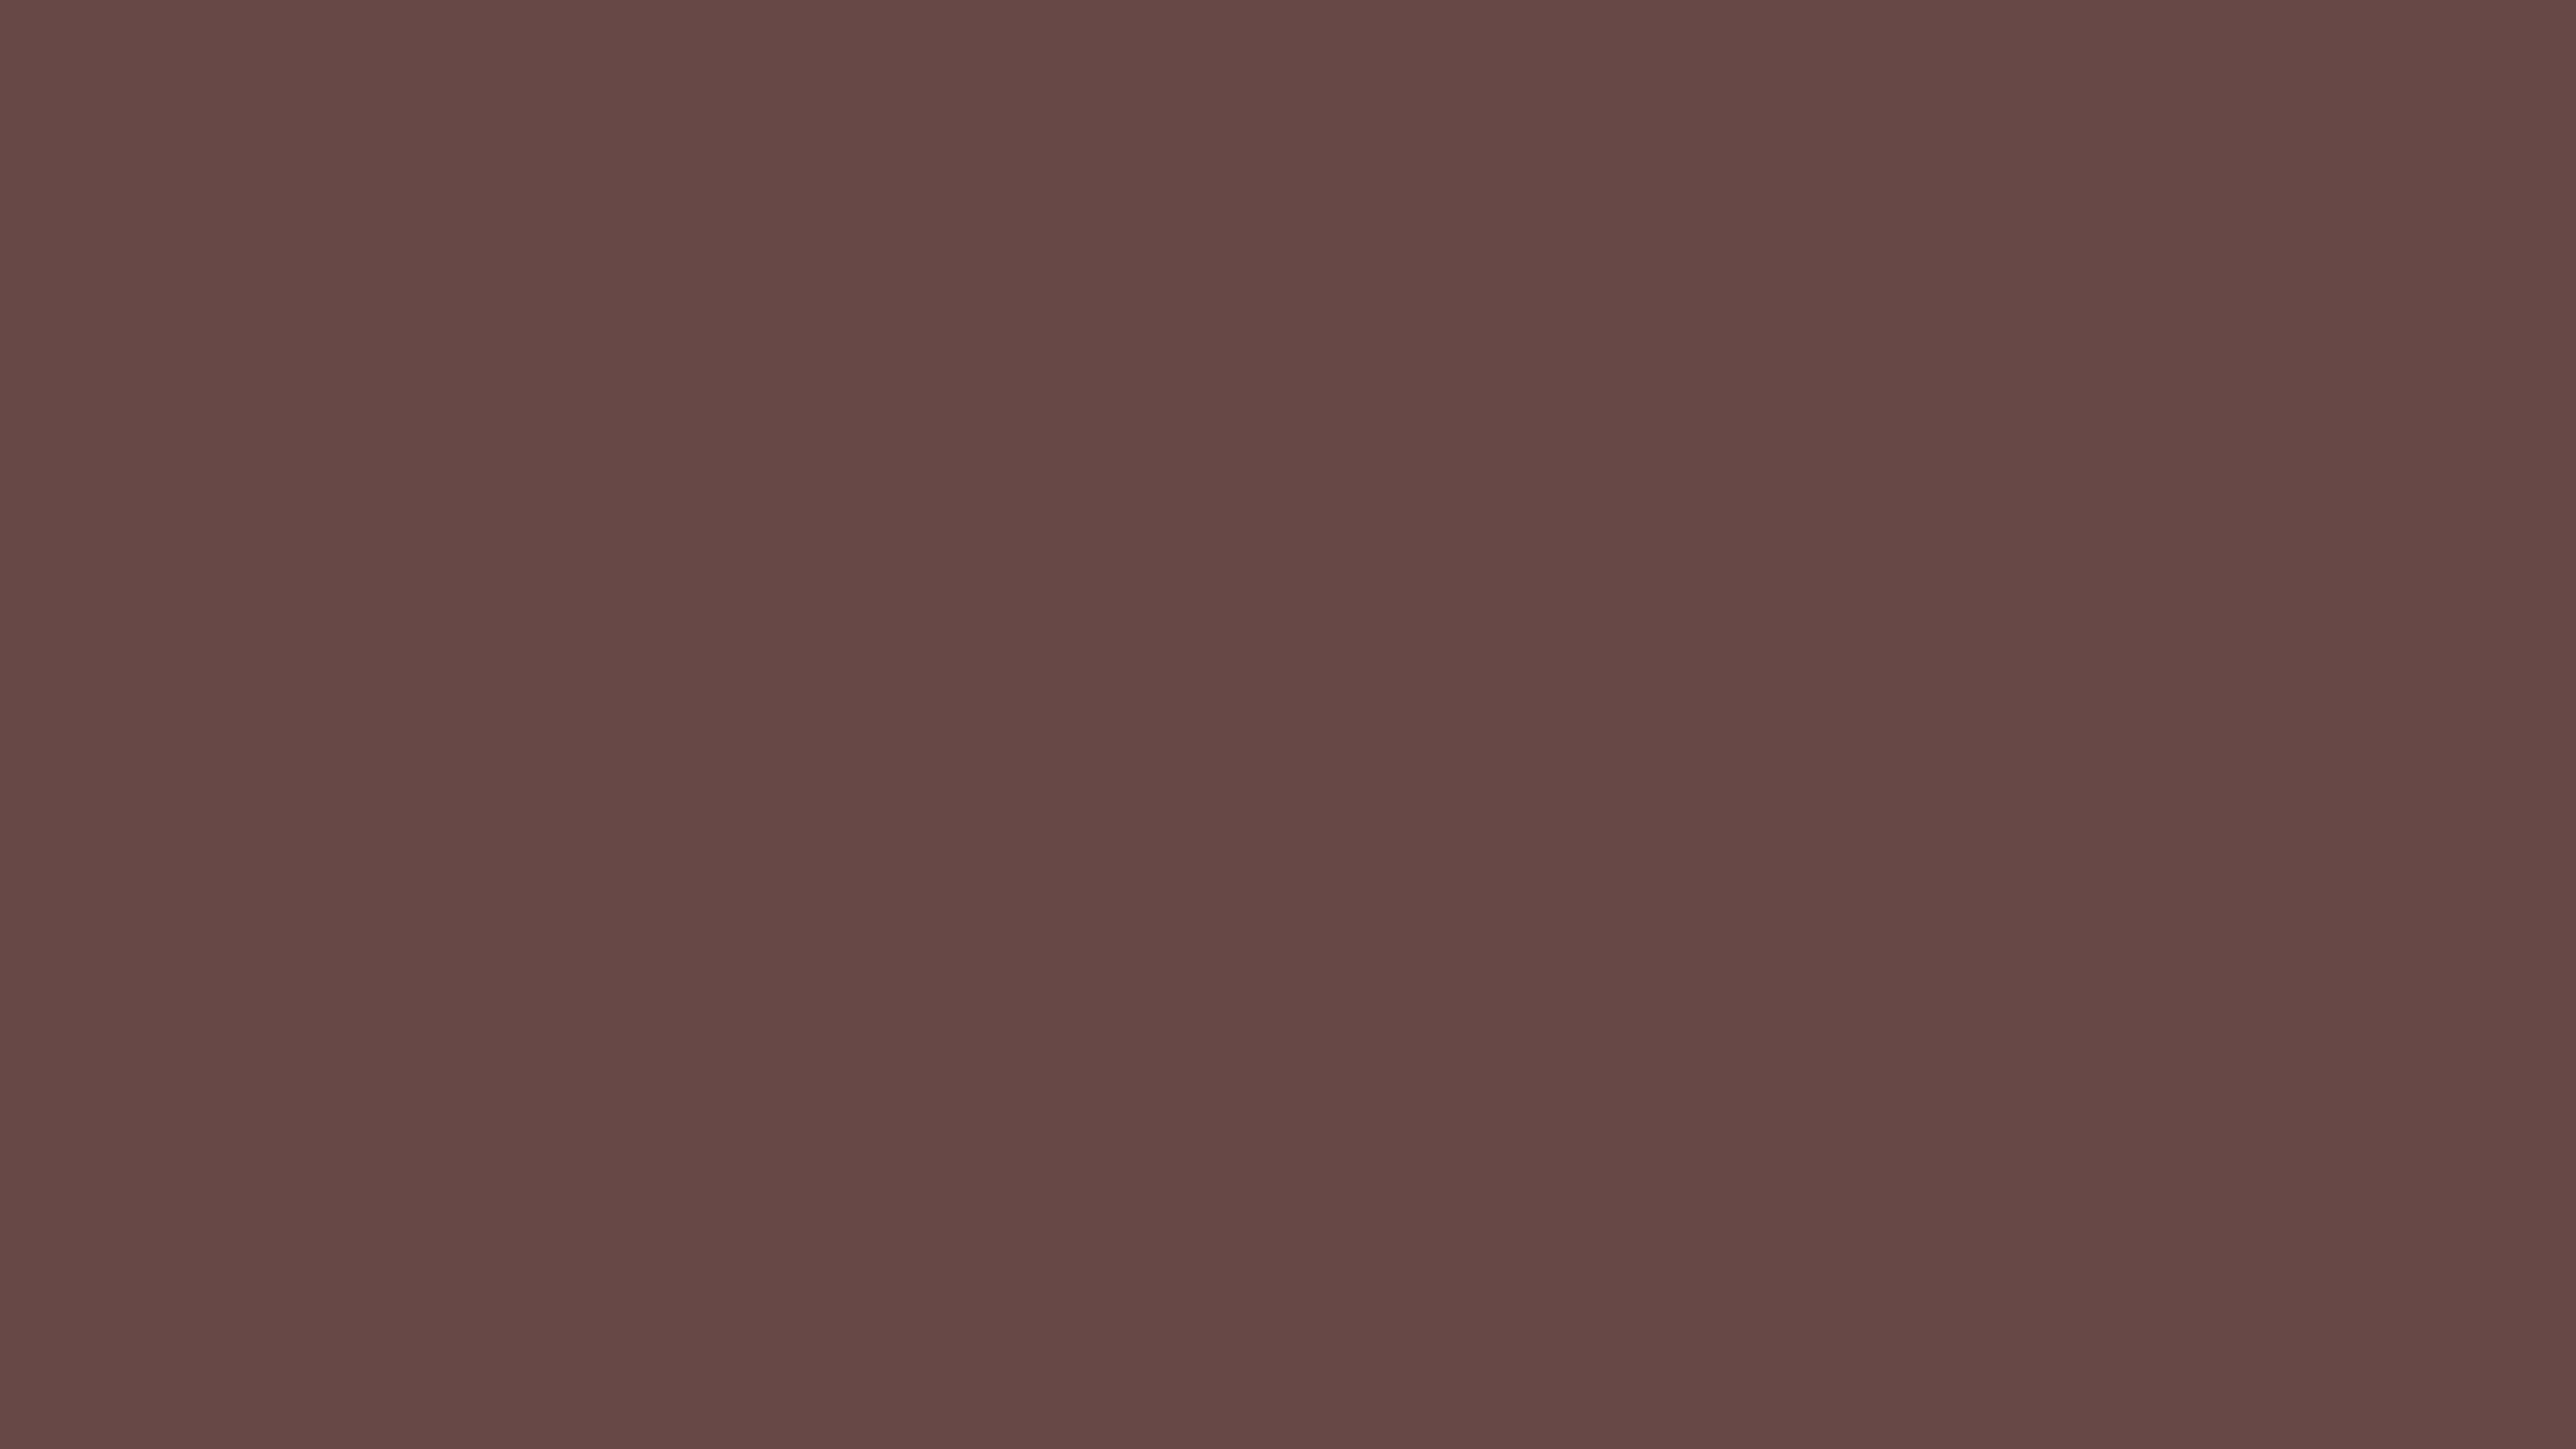 5120x2880 Rose Ebony Solid Color Background